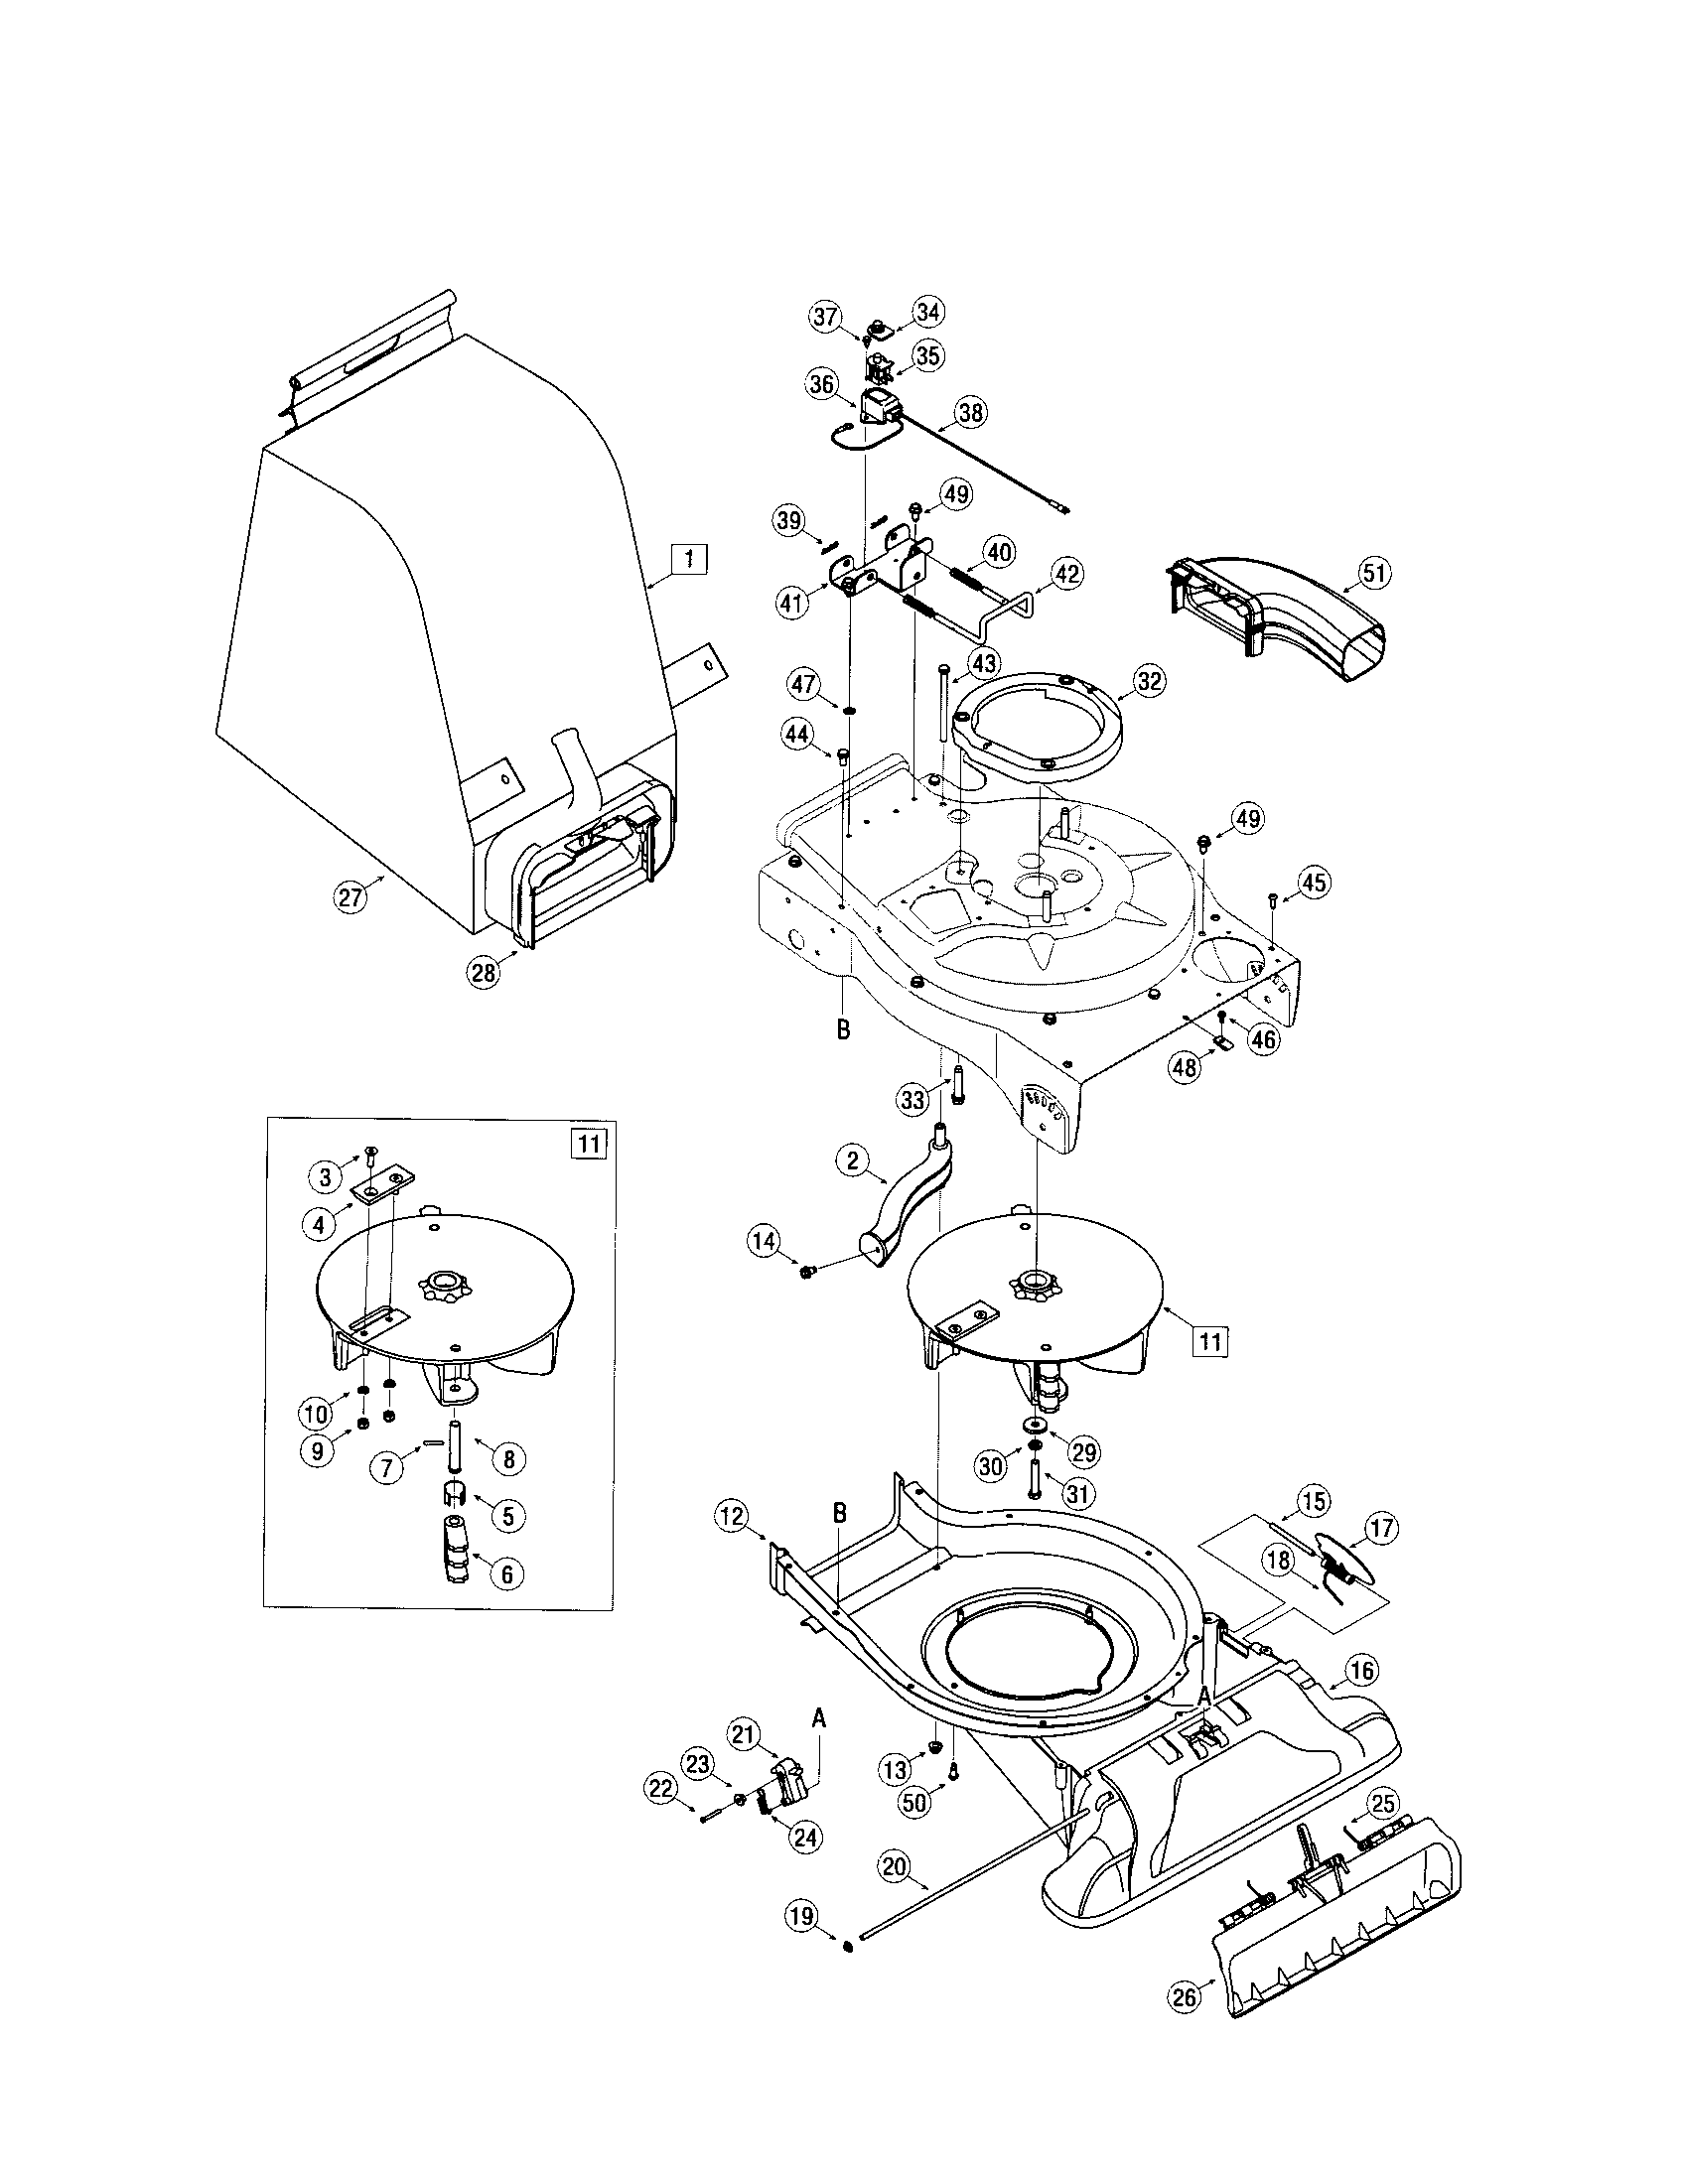 NOZZLE/IMPELLER/BAG Diagram & Parts List for Model